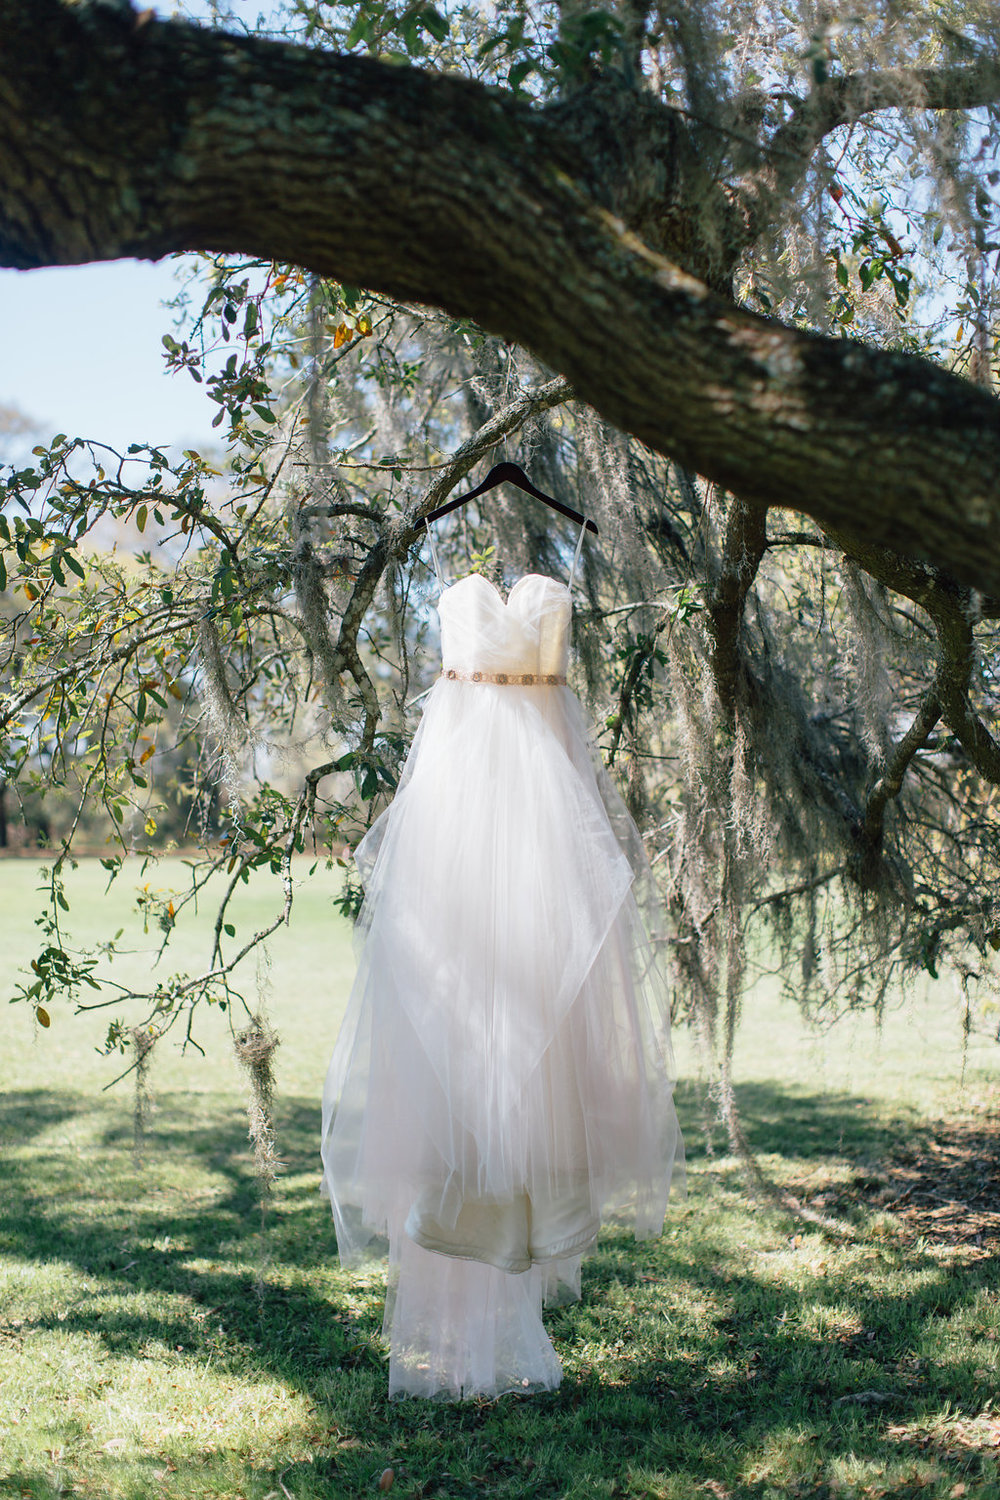 hannah-lane-photography-southern-weddings-blog-charleson-wedding-charleston-styled-shoot-ivory-and-beau-bridal-boutique-blush-by-hayley-paige-candi-blush-tulle-wedding-dress-savannah-bridal-boutique-savannah-wedding-dresses-rosegold-sash-1.jpg